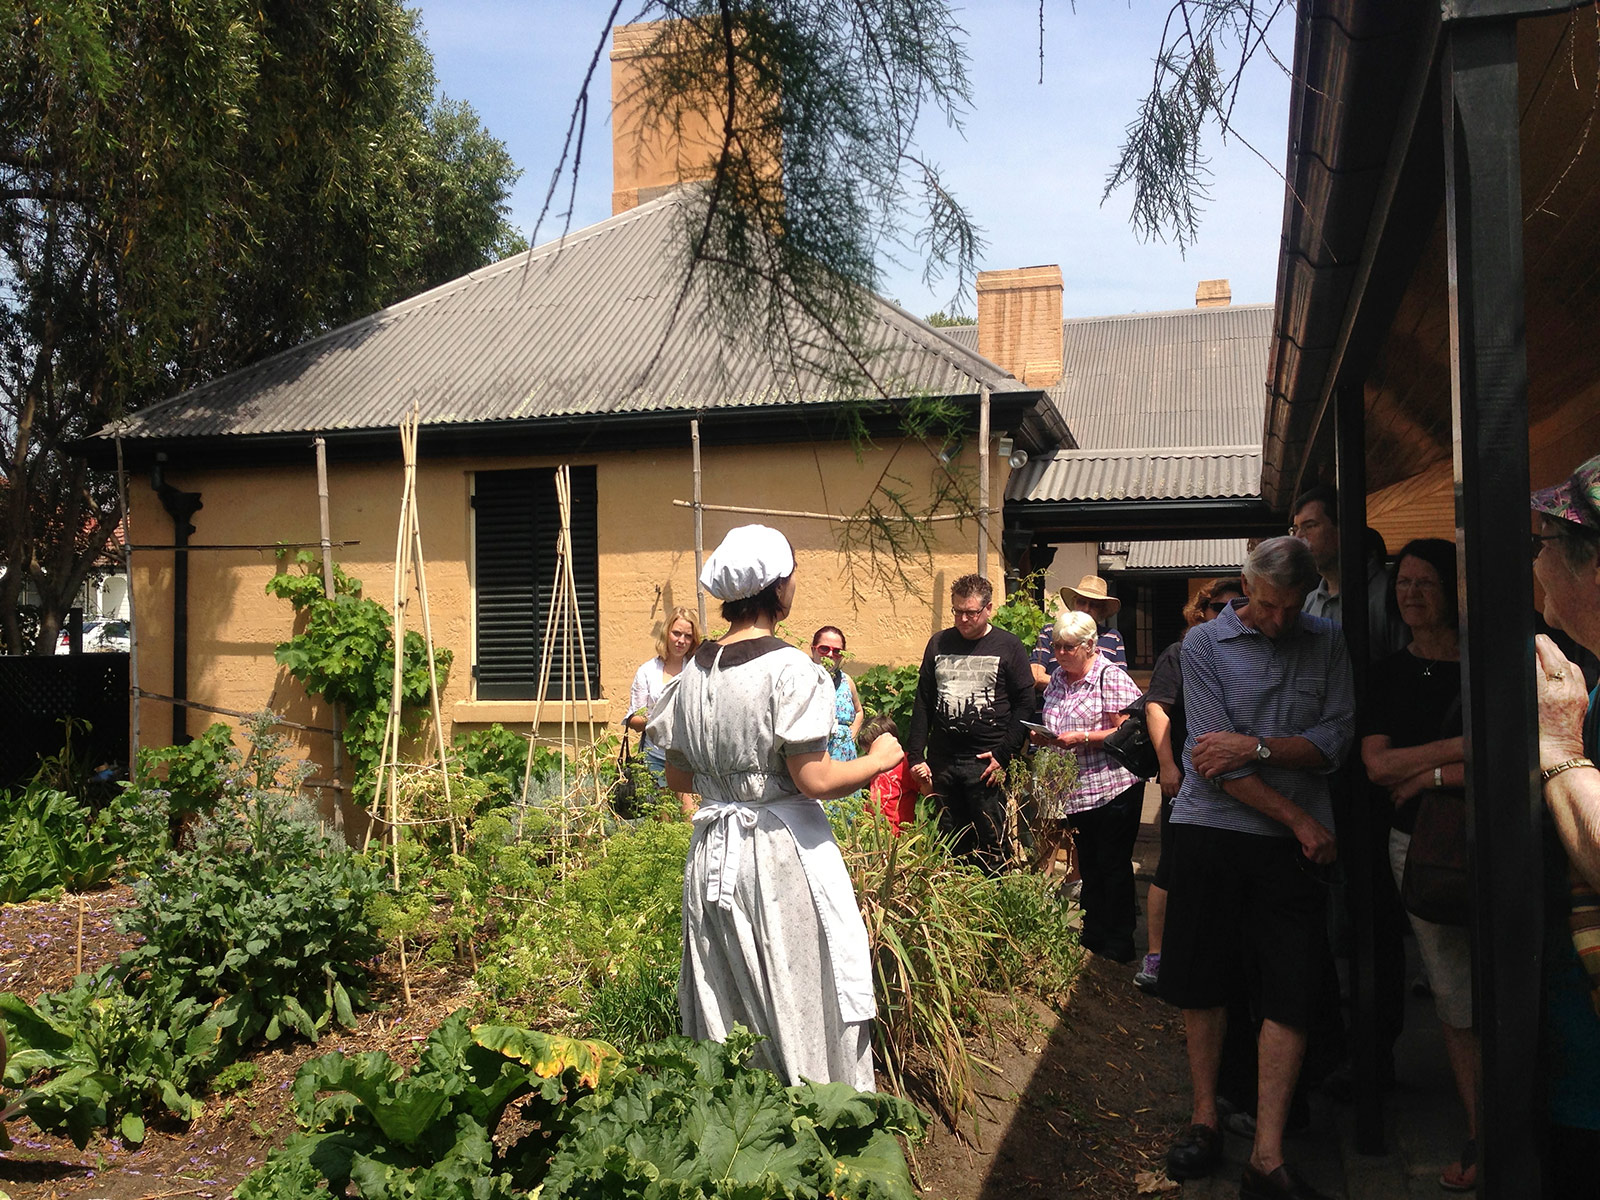 Female visitor services staff member dressed in period costume of servant, facing tour group while standing in garden bed.